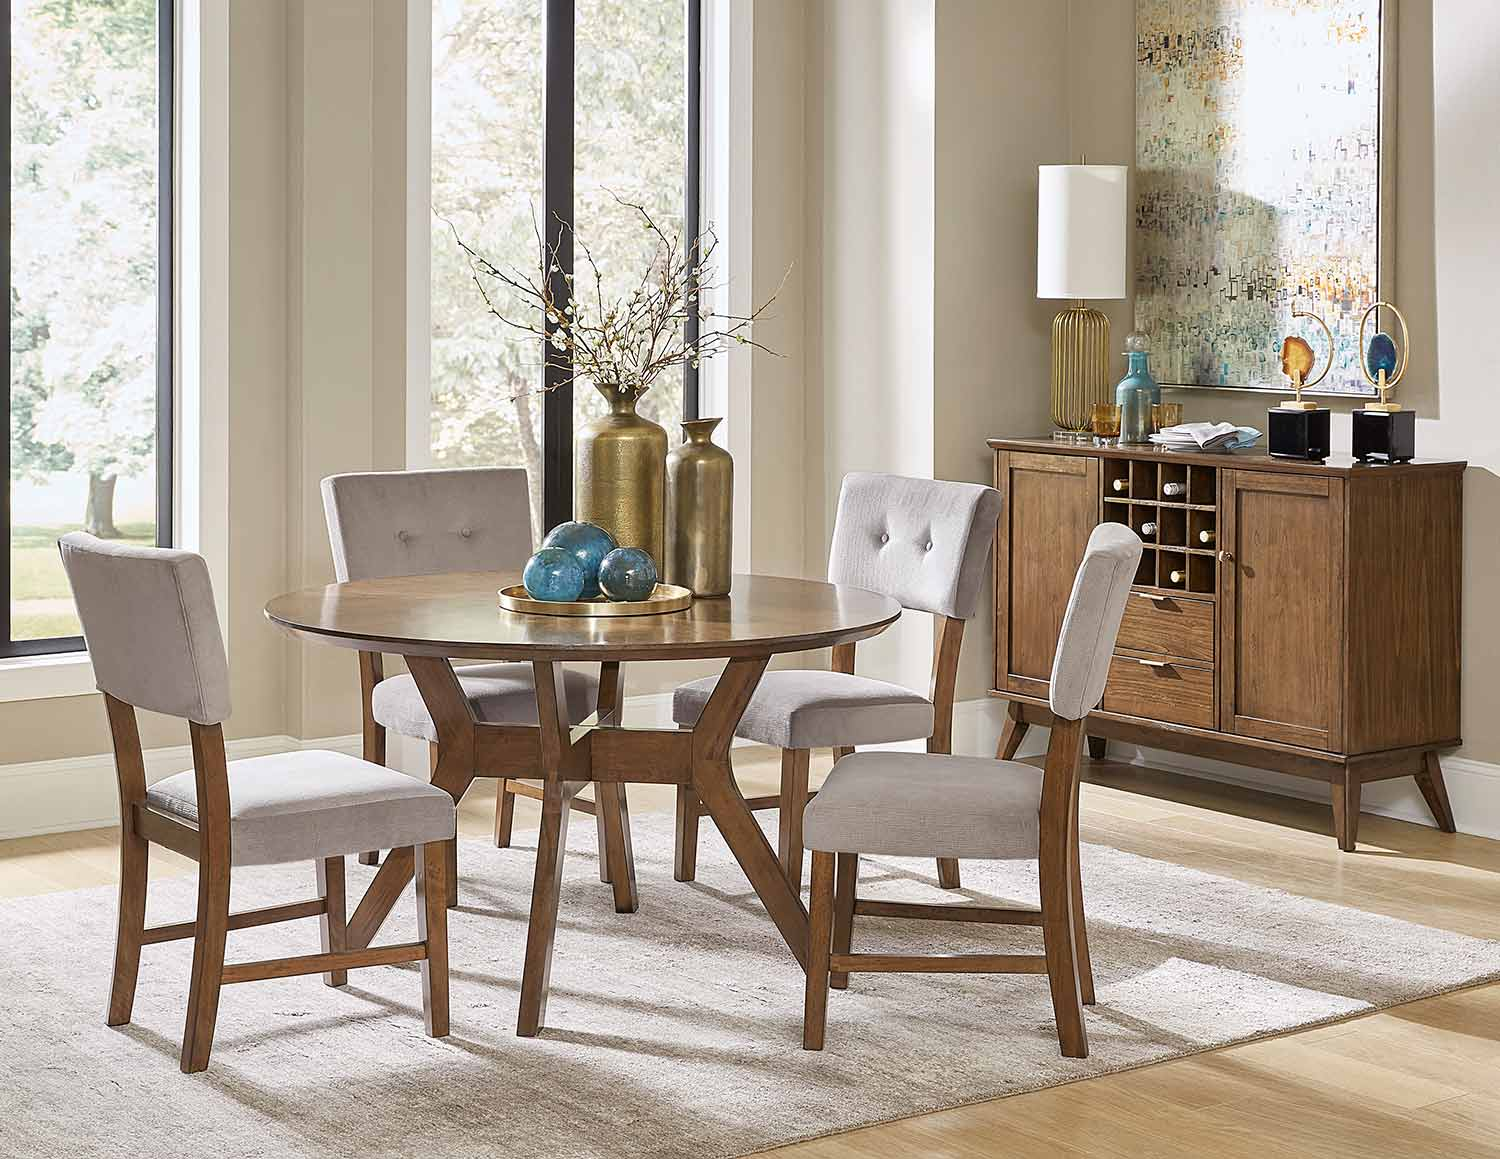 Homelegance Coel Round Dining Set - Natural